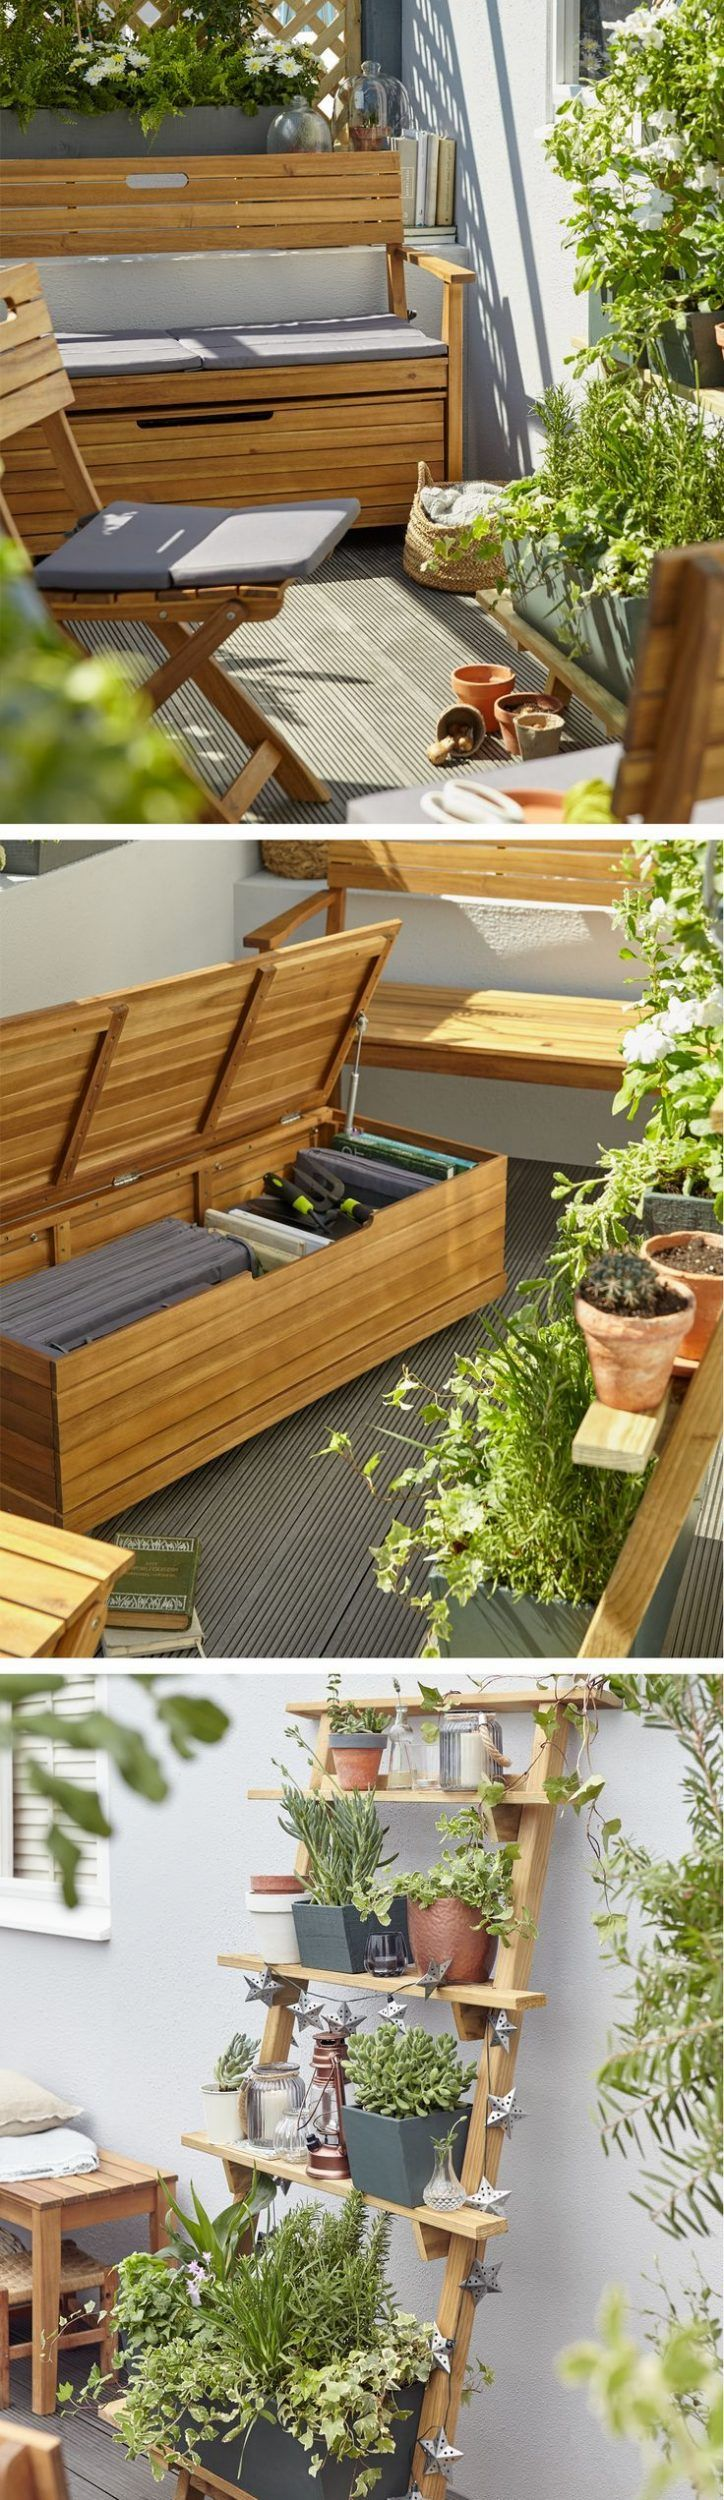 die 738 besten bilder zu garten terrasse ideen garden auf pinterest garten terrasse. Black Bedroom Furniture Sets. Home Design Ideas